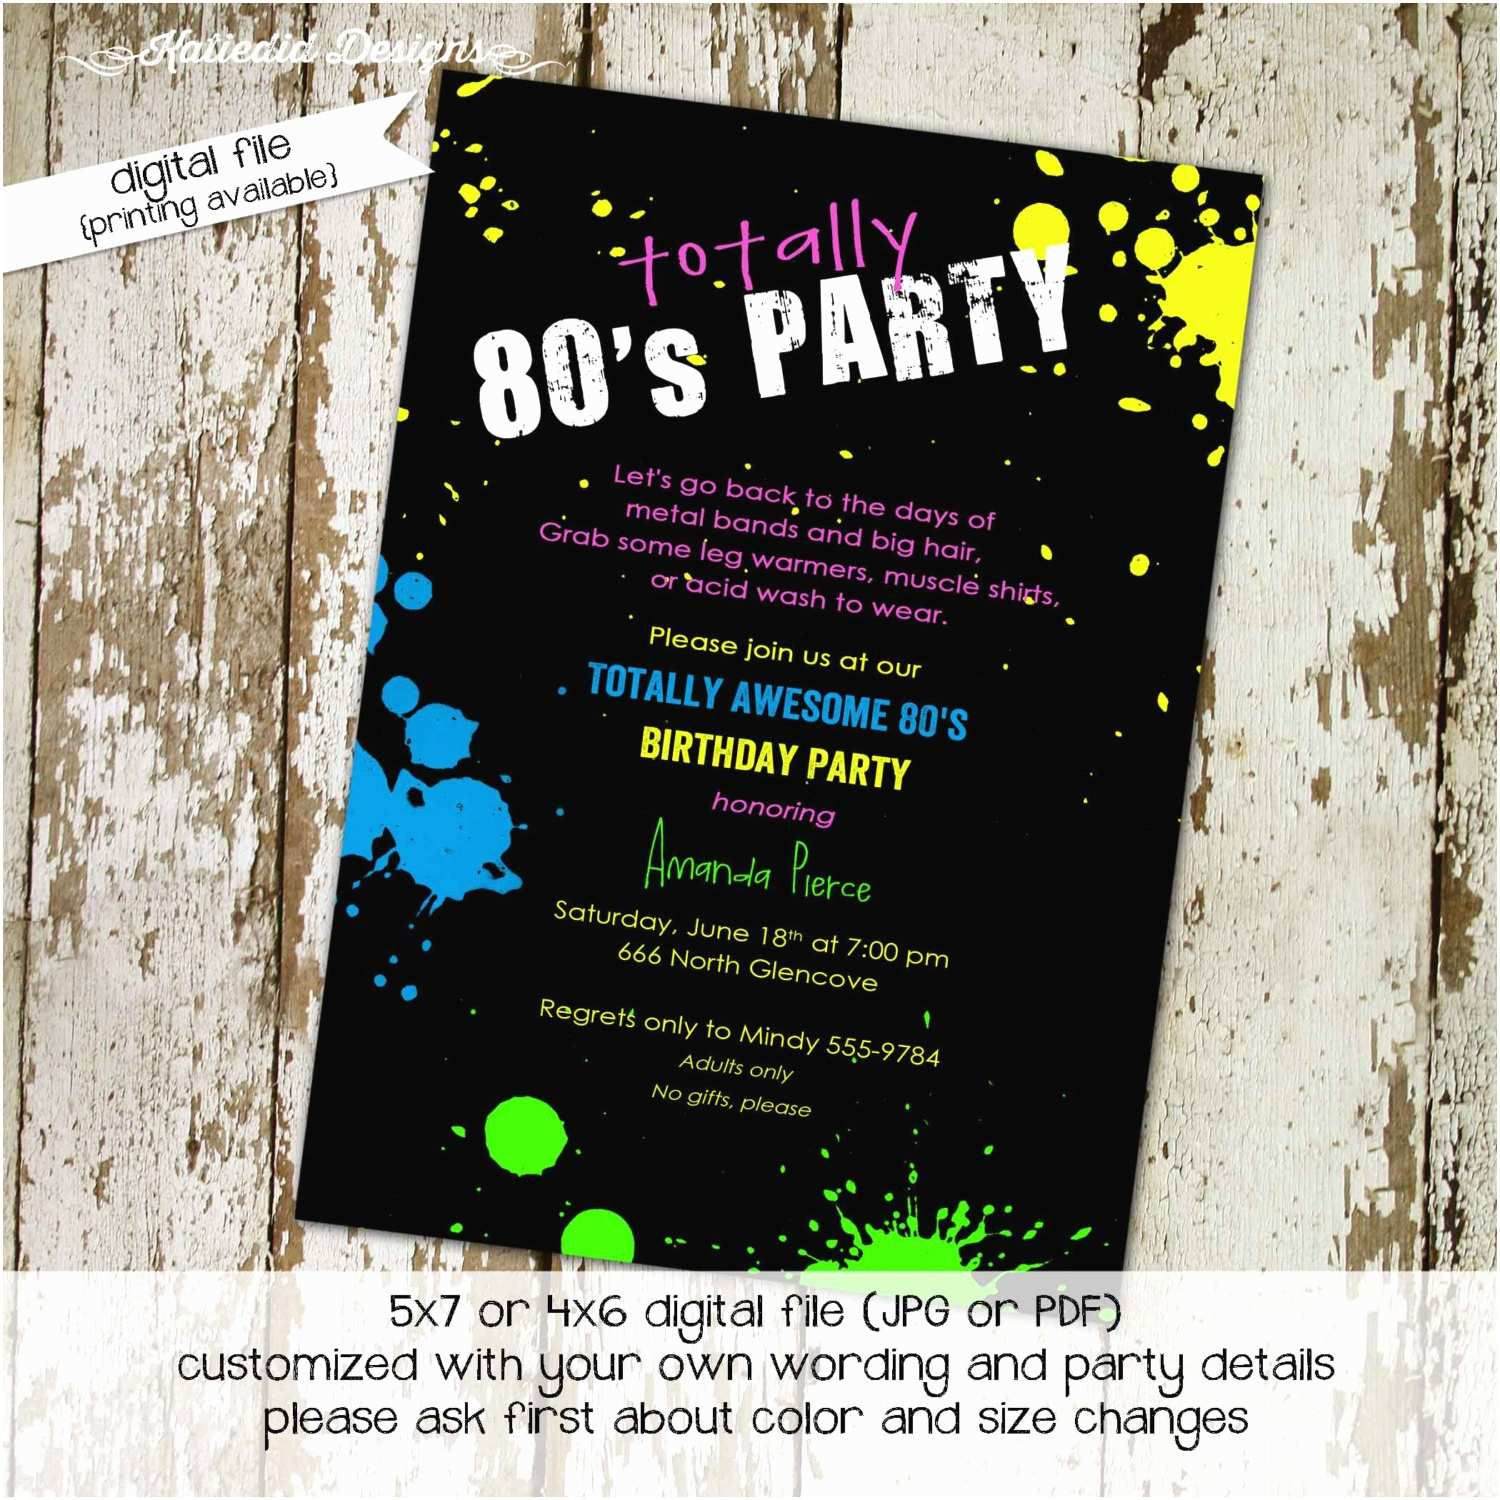 80s Theme Party Invitations Wording